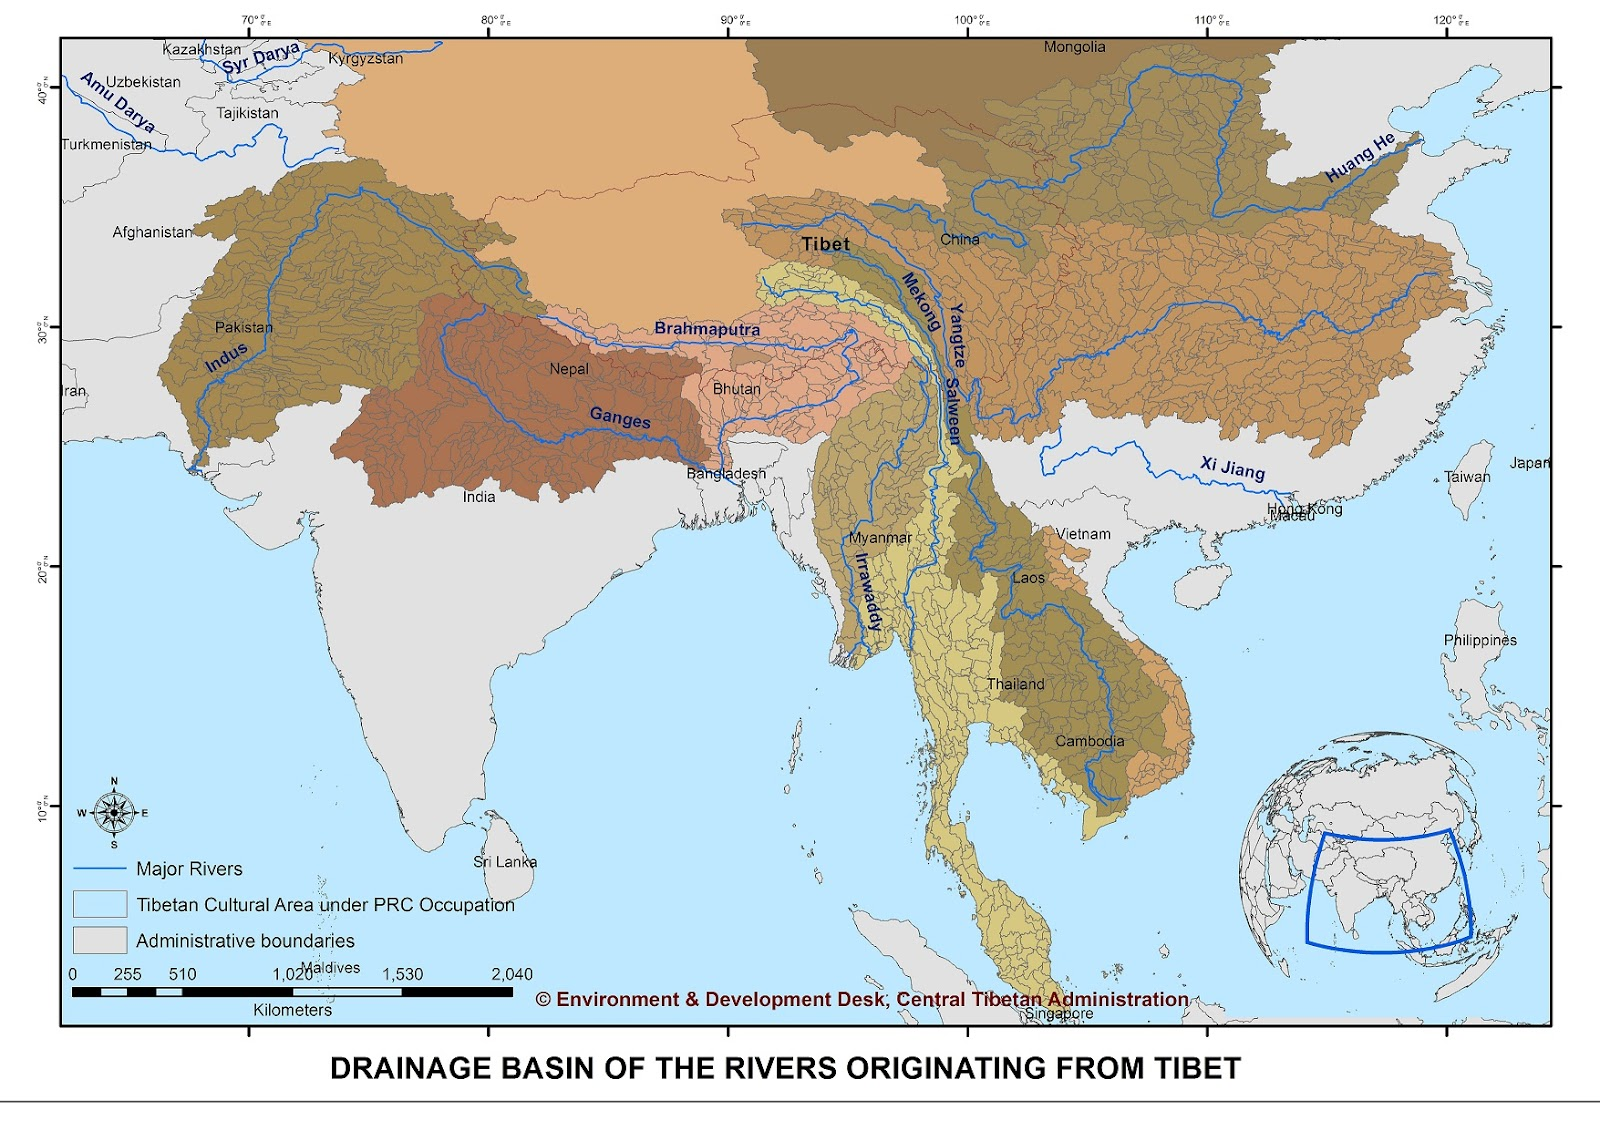 Plateau Of Tibet On Map Of Asia.Tibet Environment And Development Impact On River Hydrology In